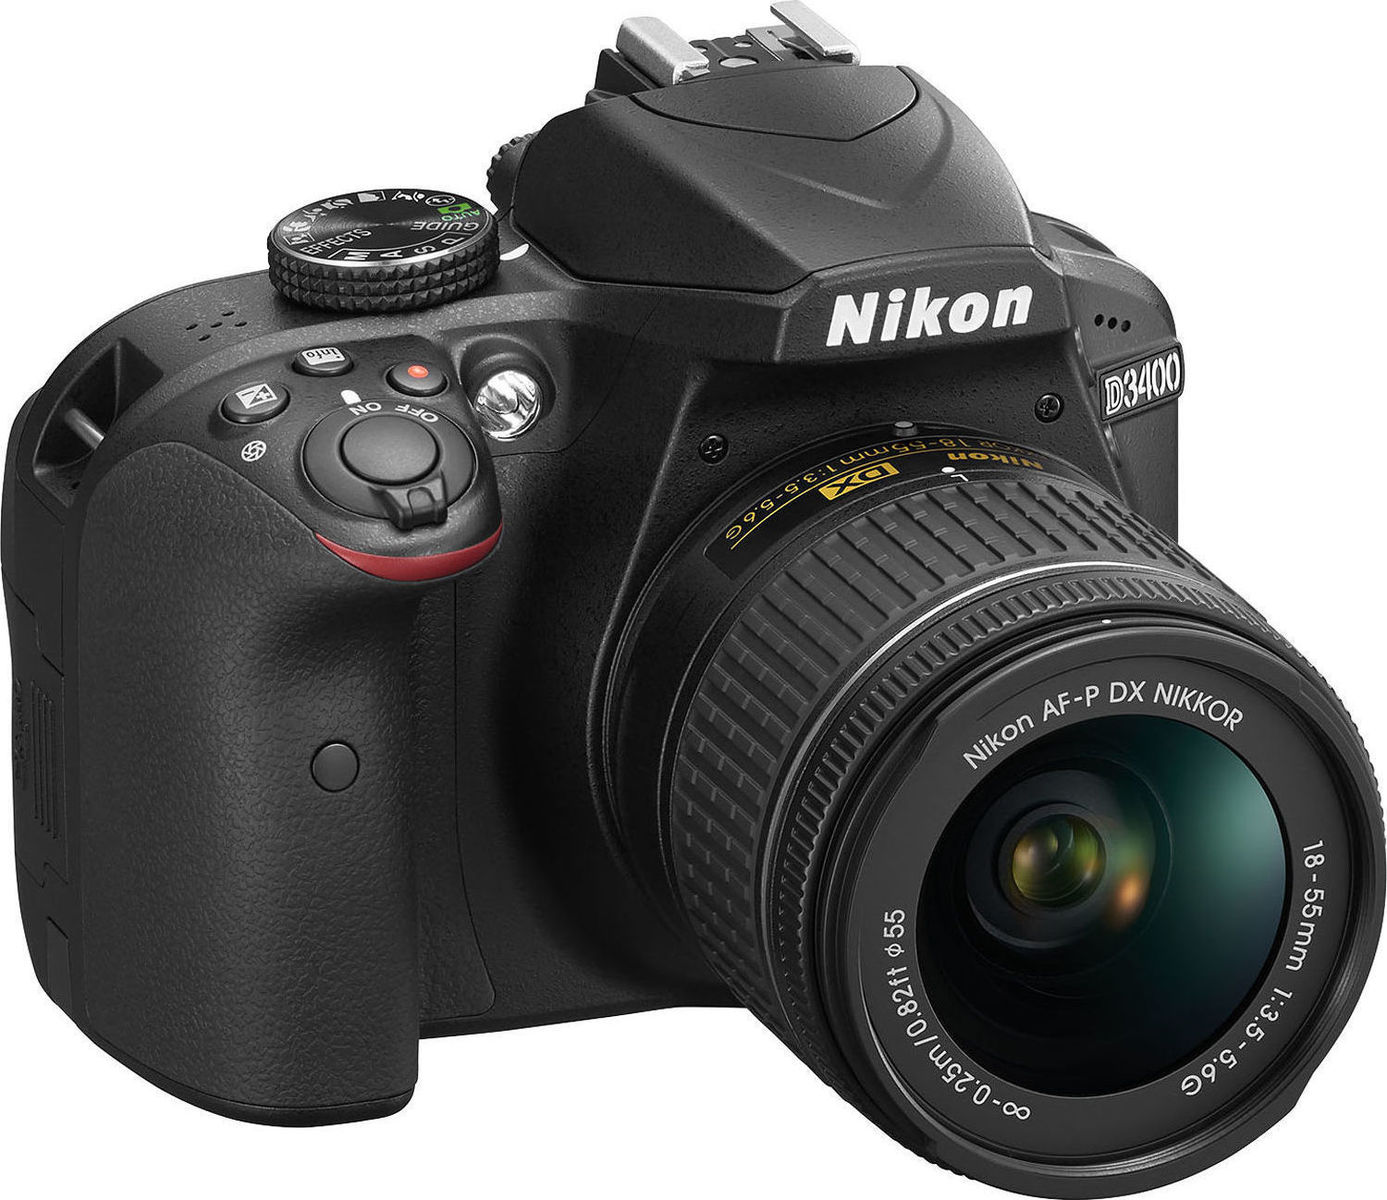 Nikon D3400 Kit AF-P DX 18-55mm f/3.5-5.6G VR Black Πληρωμή έως 12 δόσεις